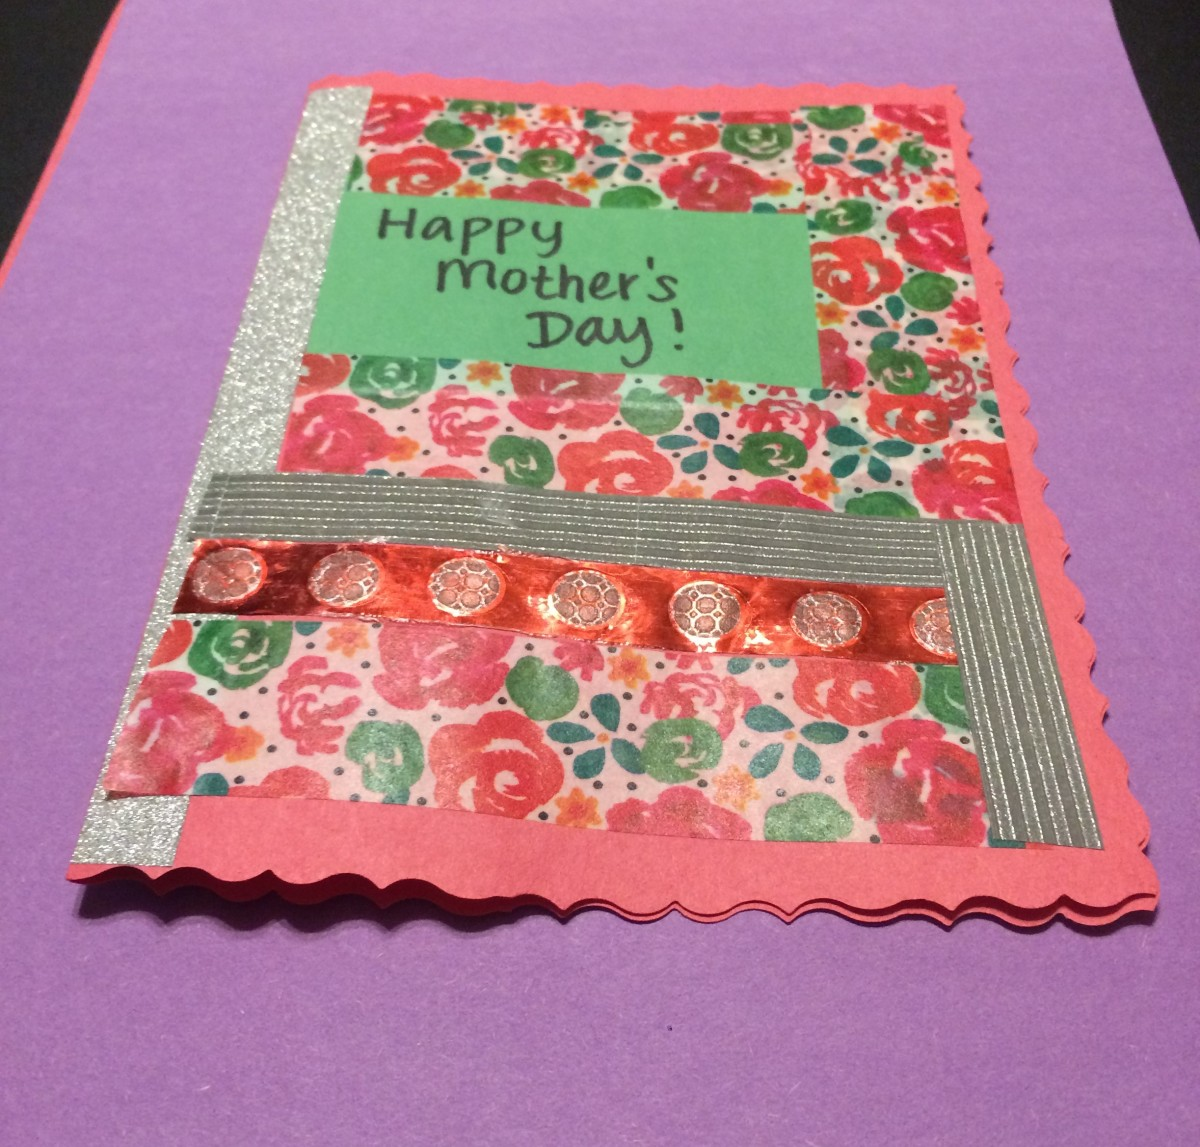 This sweet card for Mother's Day was so fun to make. I love playing with stickers and washi tape!